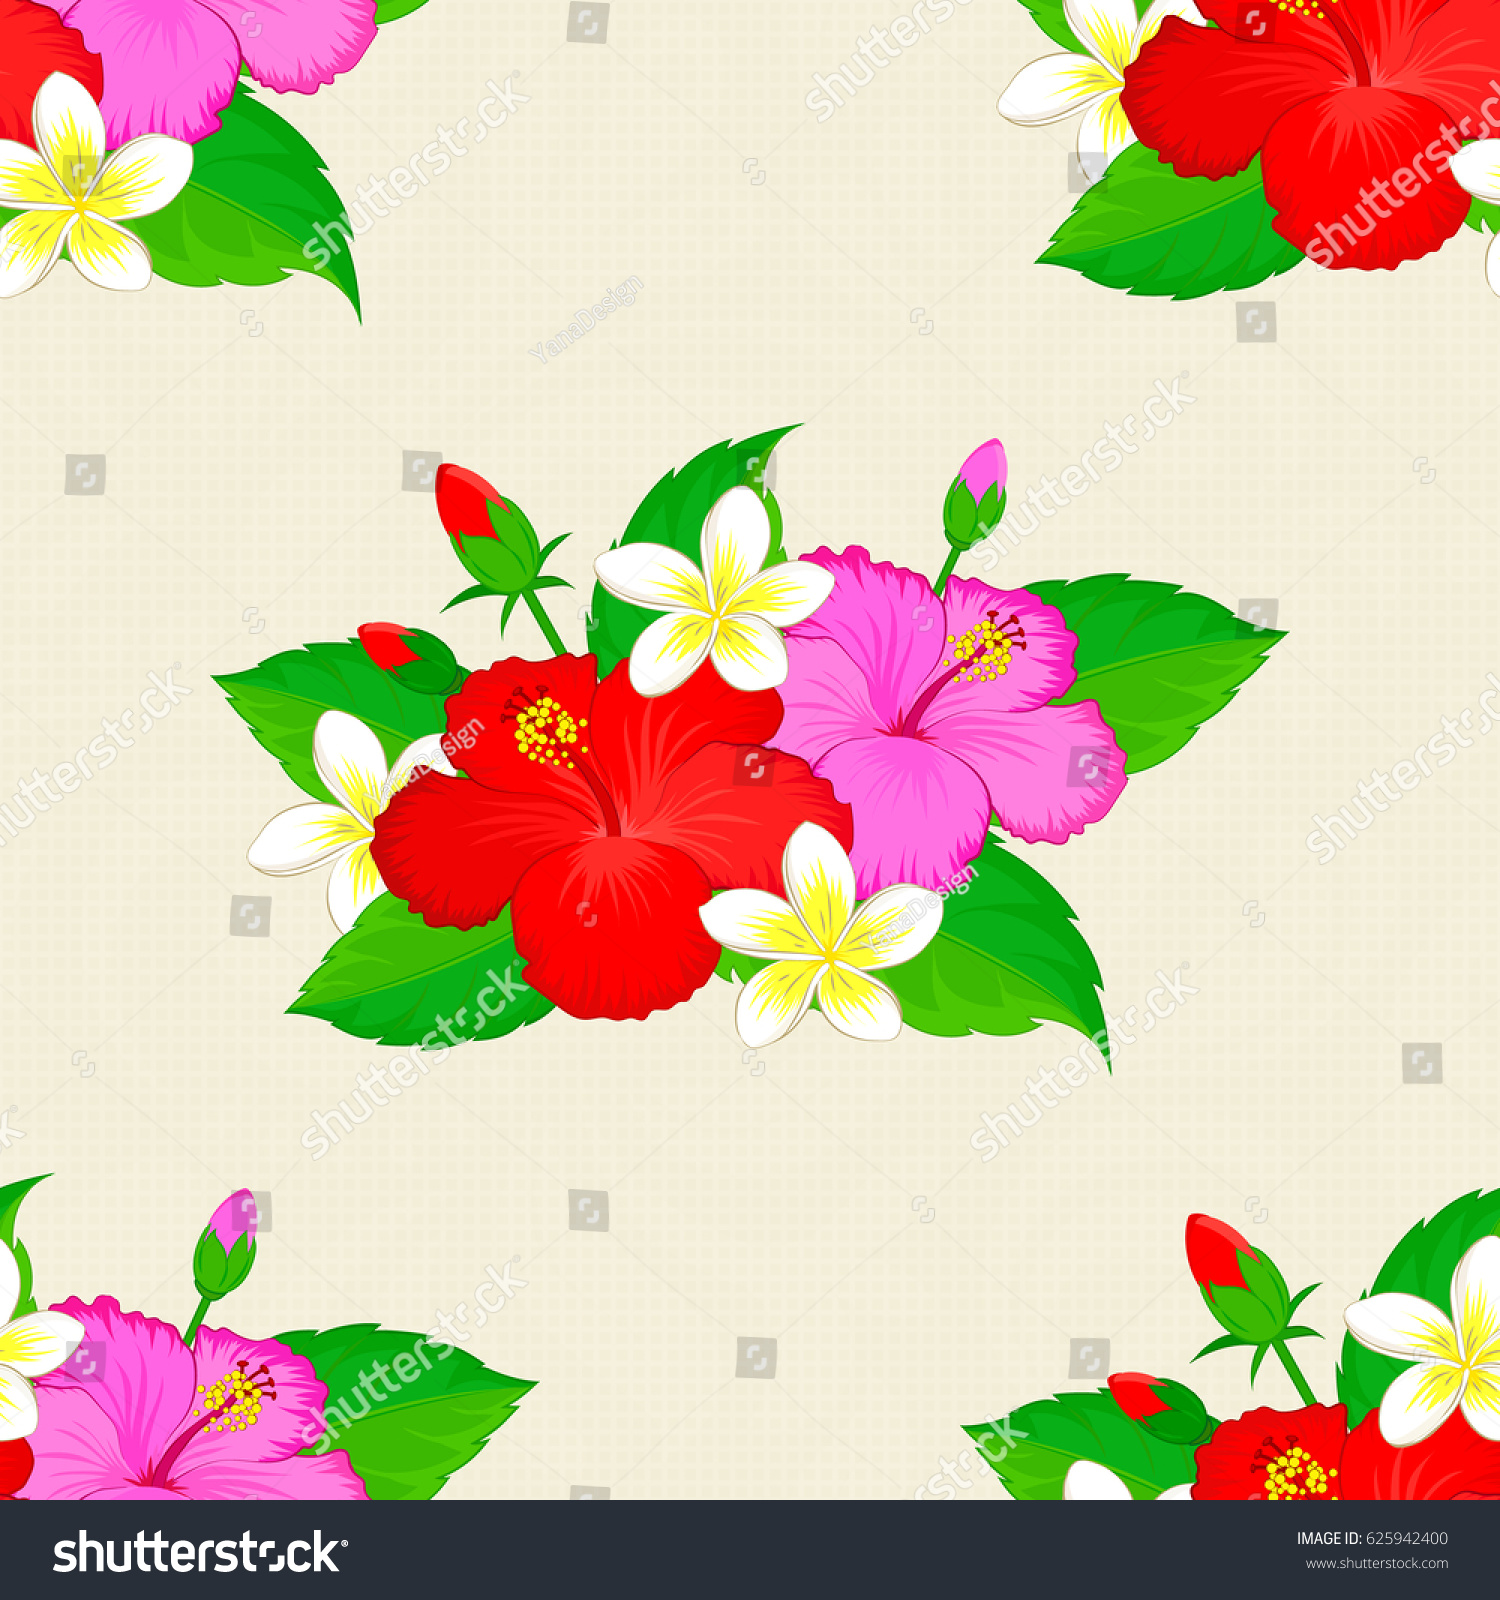 Floral Print Repeating Vector Hibiscus Flowers Stock Vector